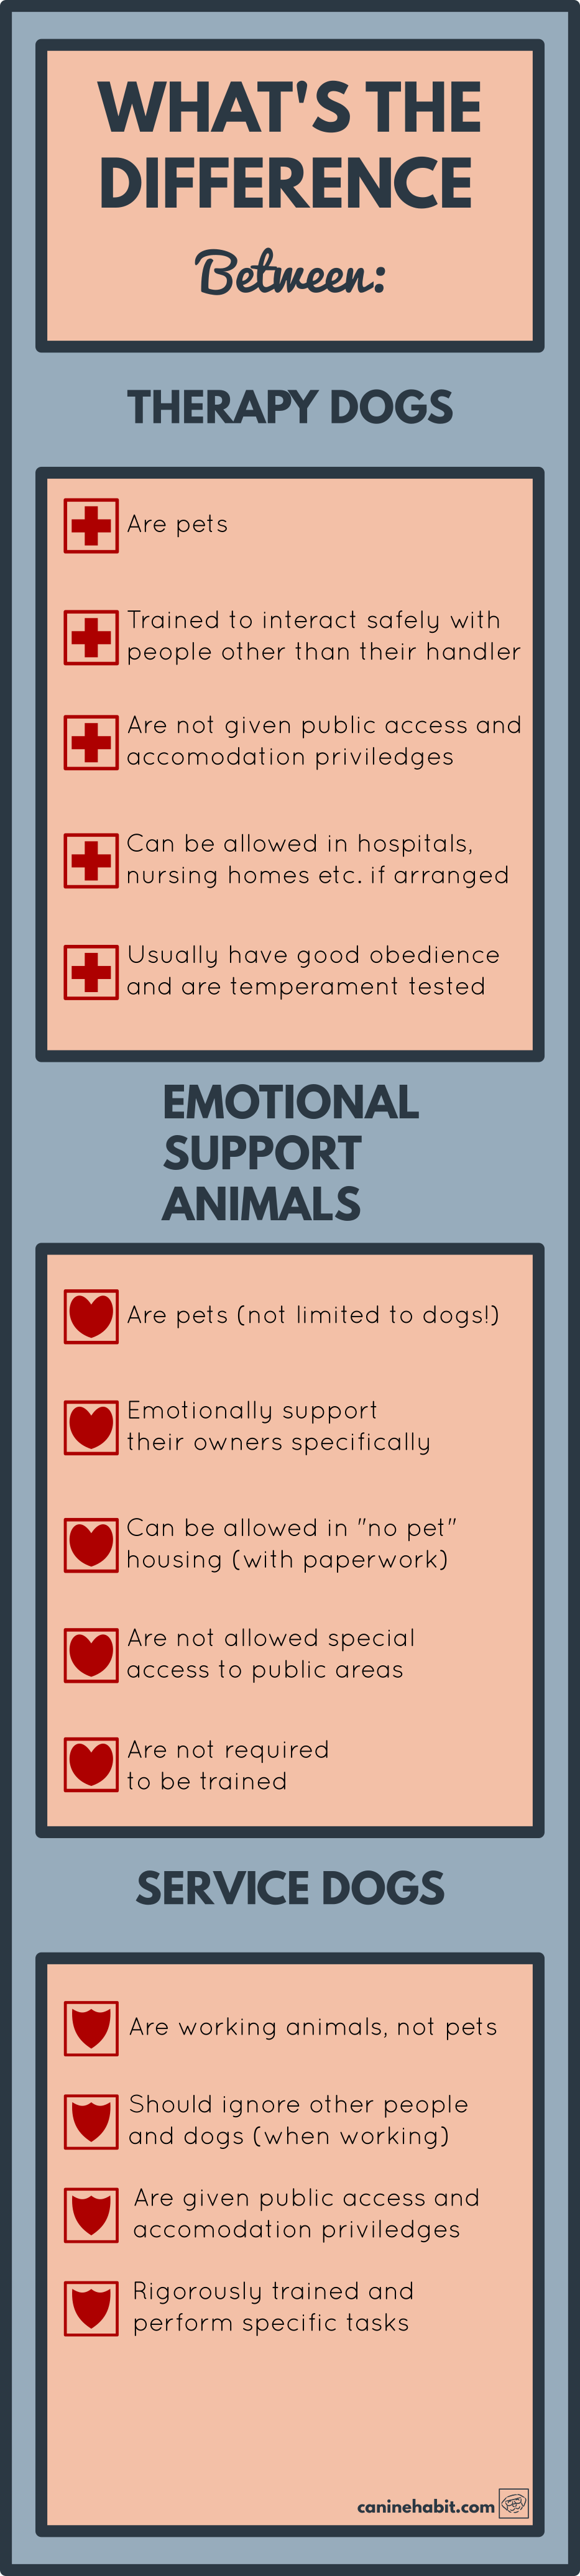 service dog vs tehrapy dog vs emotional support dog